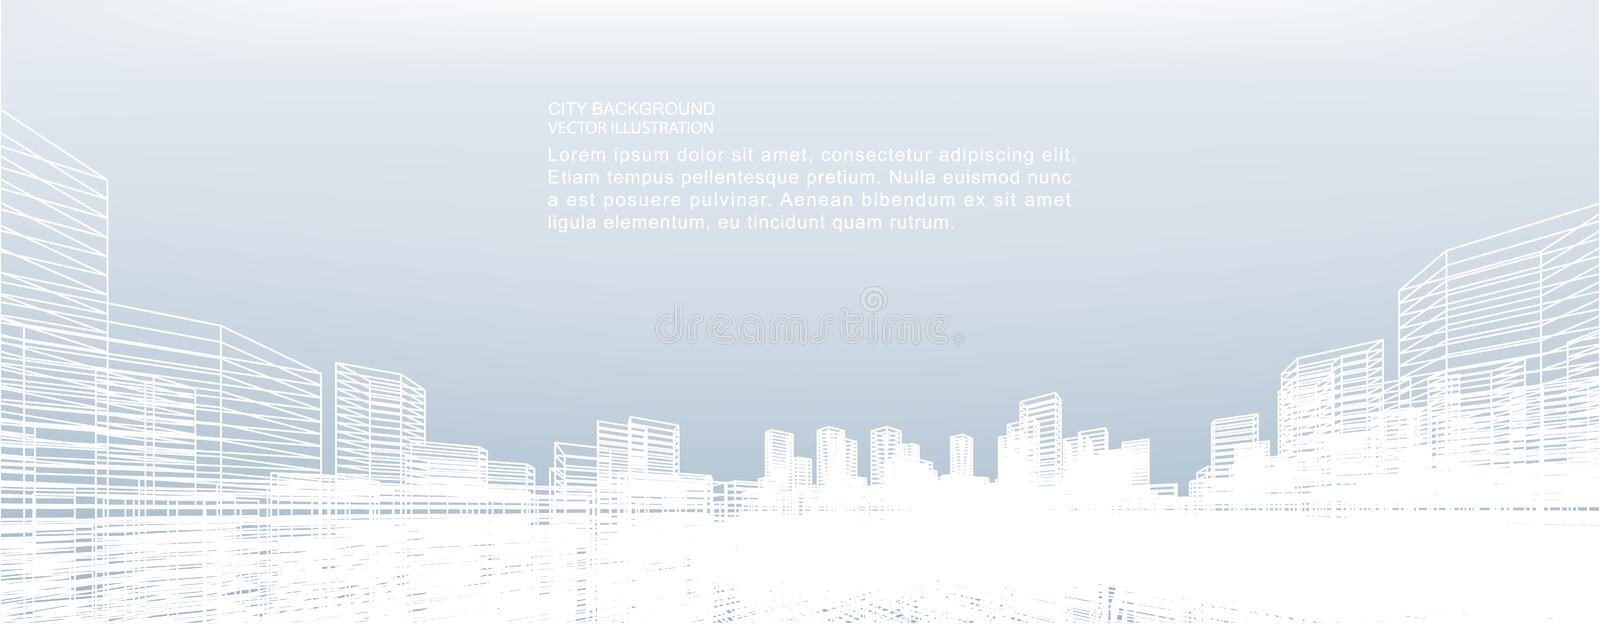 Abstract wireframe city background. Perspective 3D render of building wireframe. royalty free illustration